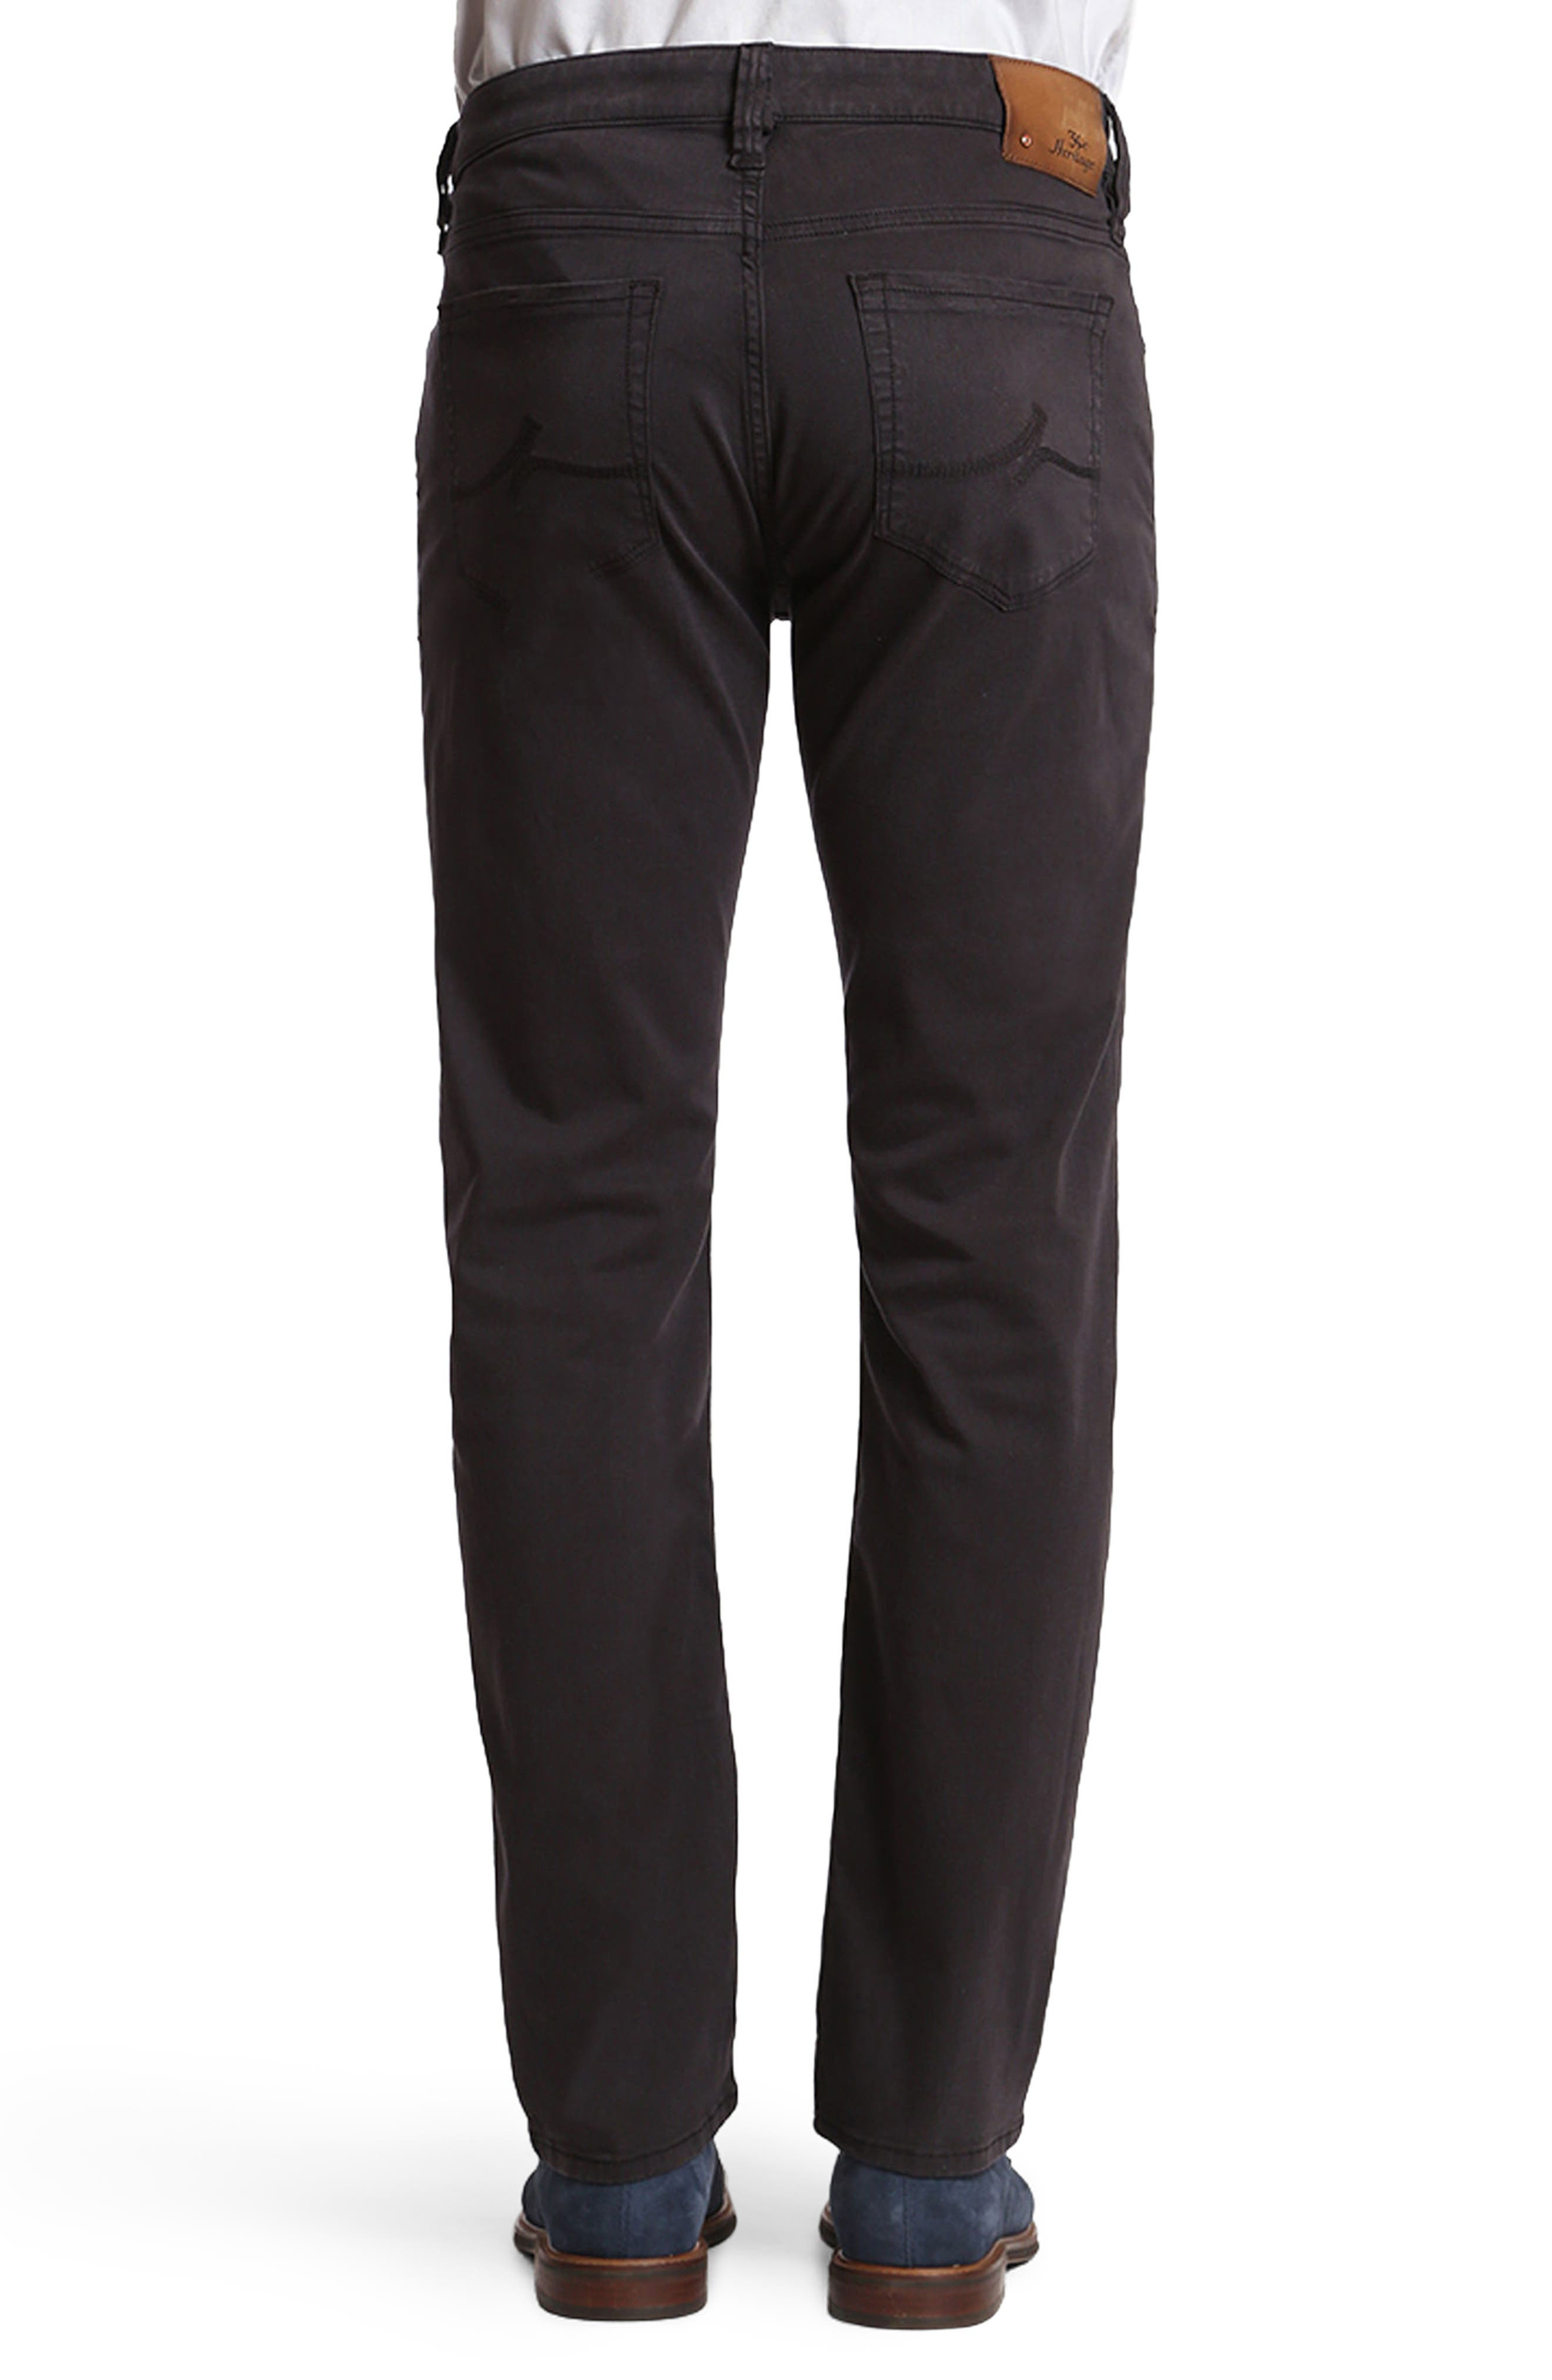 Courage Straight Leg Twill Pants,                             Alternate thumbnail 2, color,                             BLUE-GREY TWILL